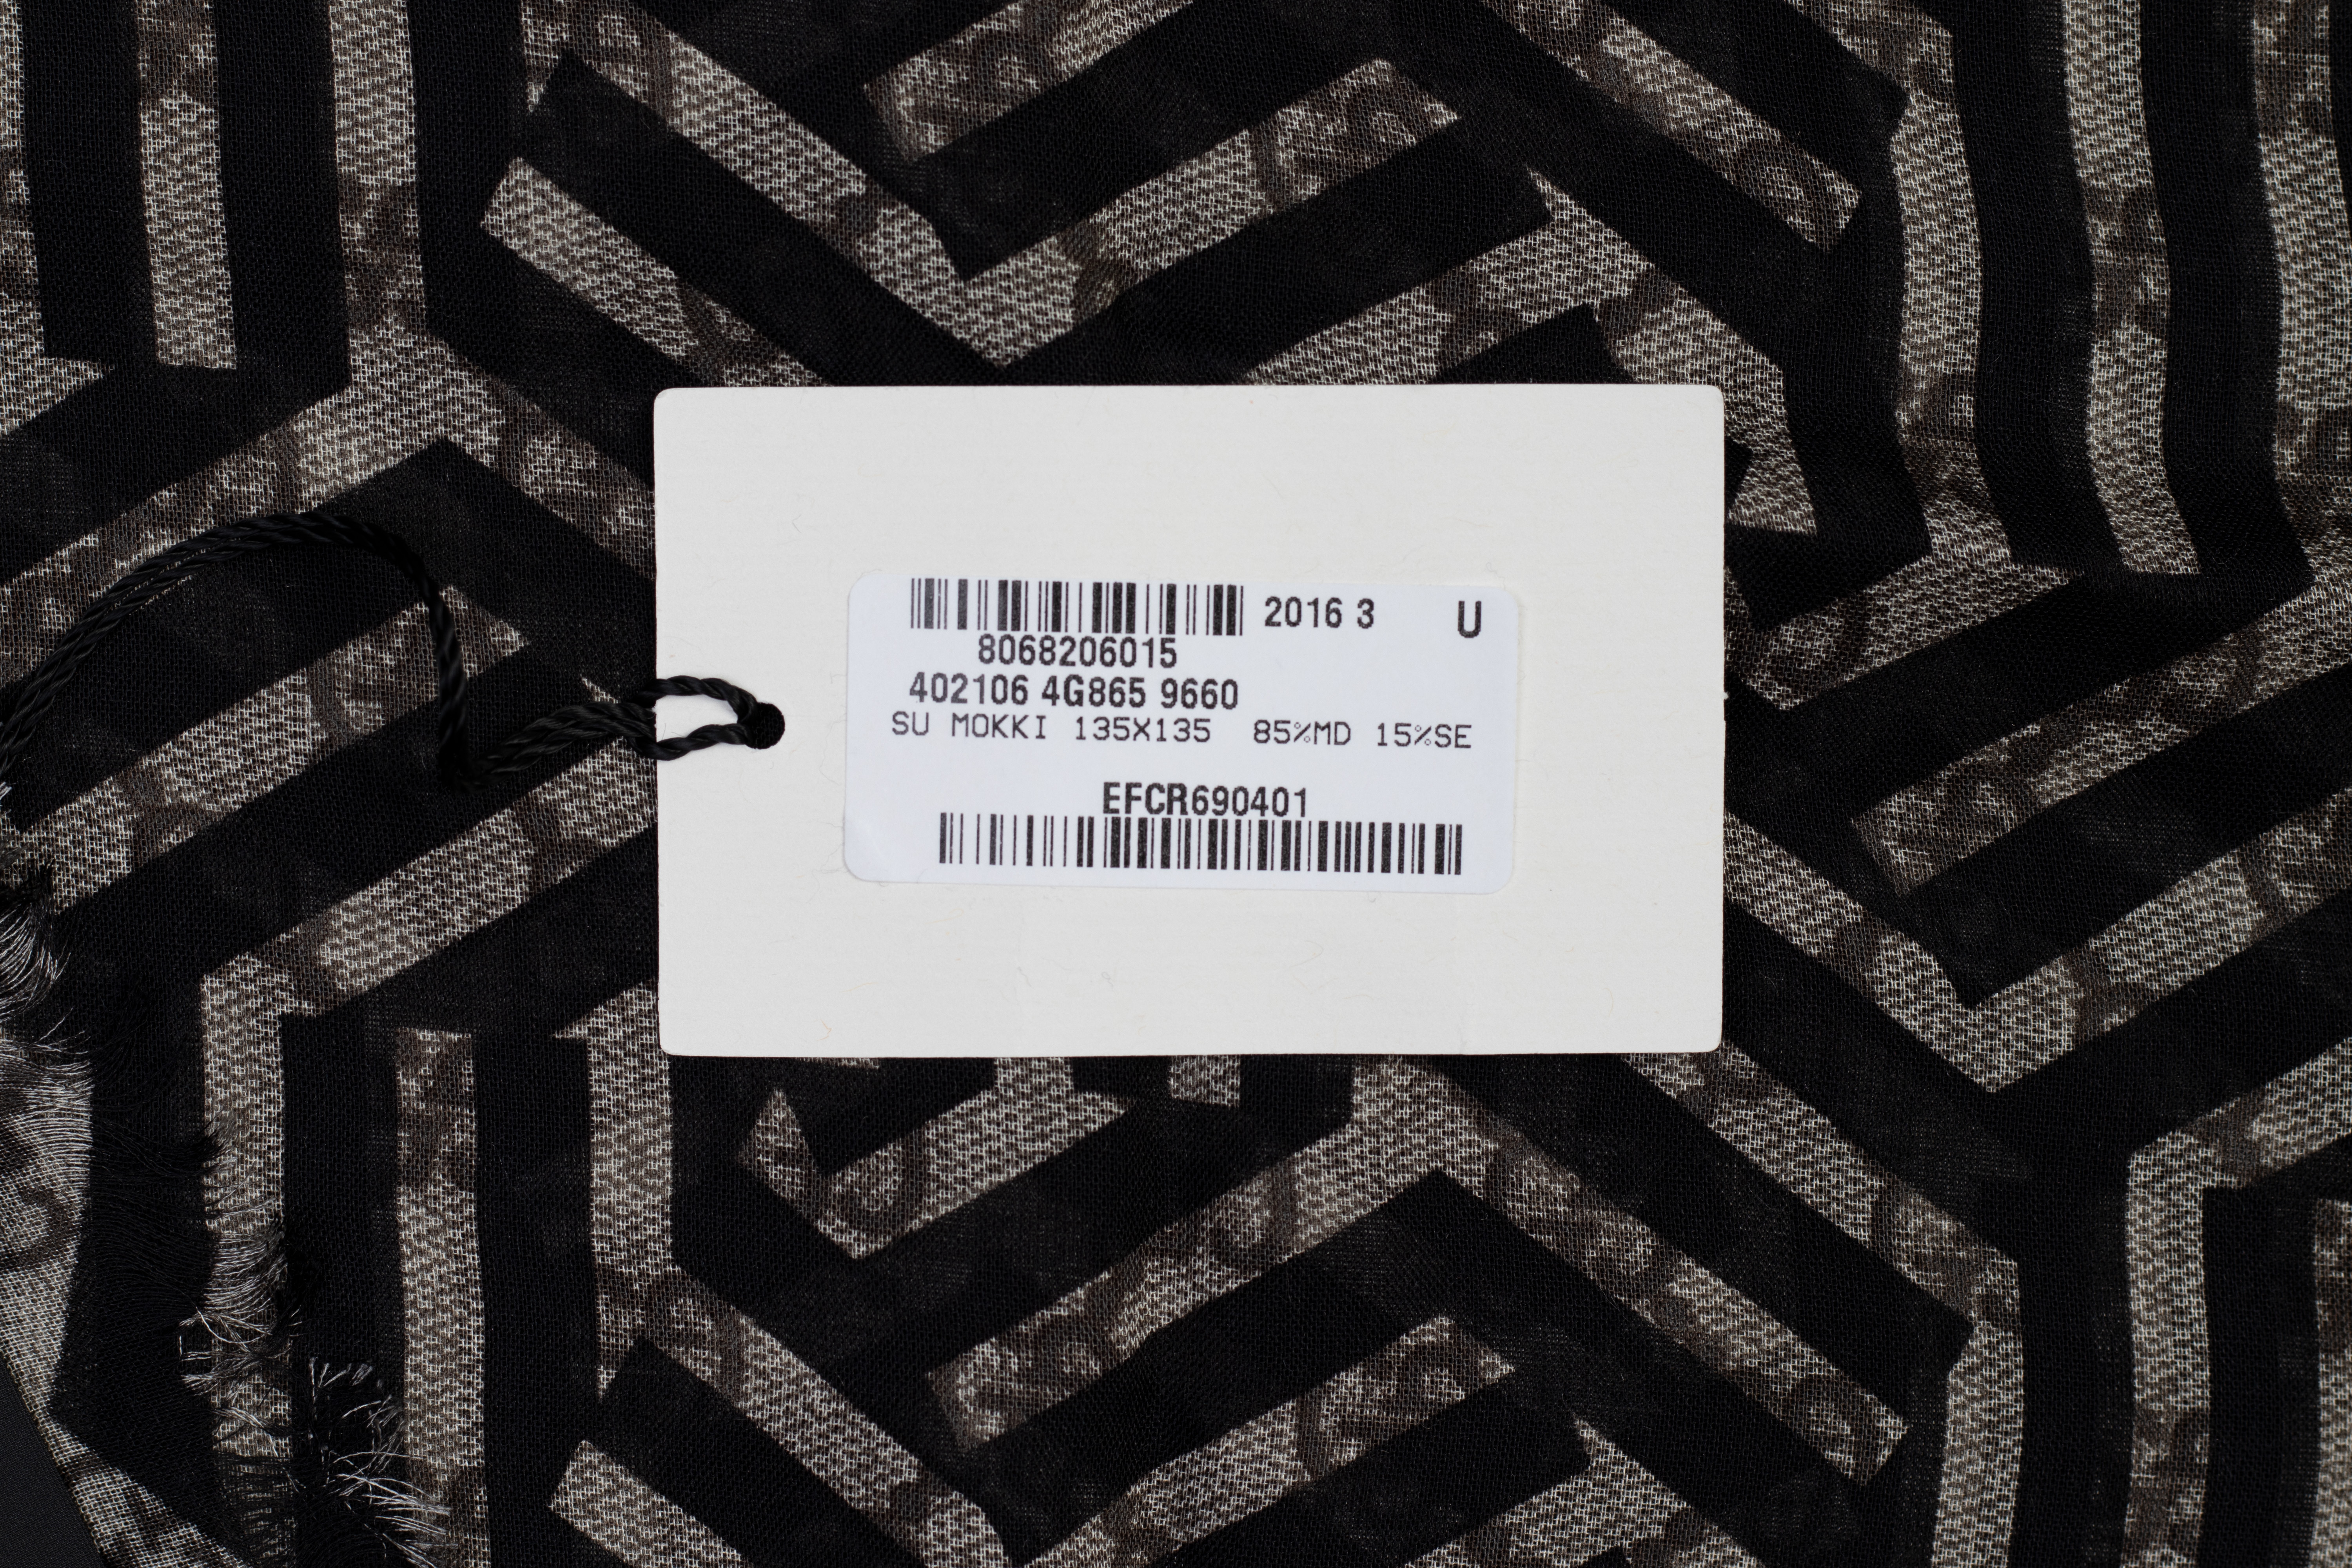 A GUCCI MONOGRAM SCARF - Image 6 of 6